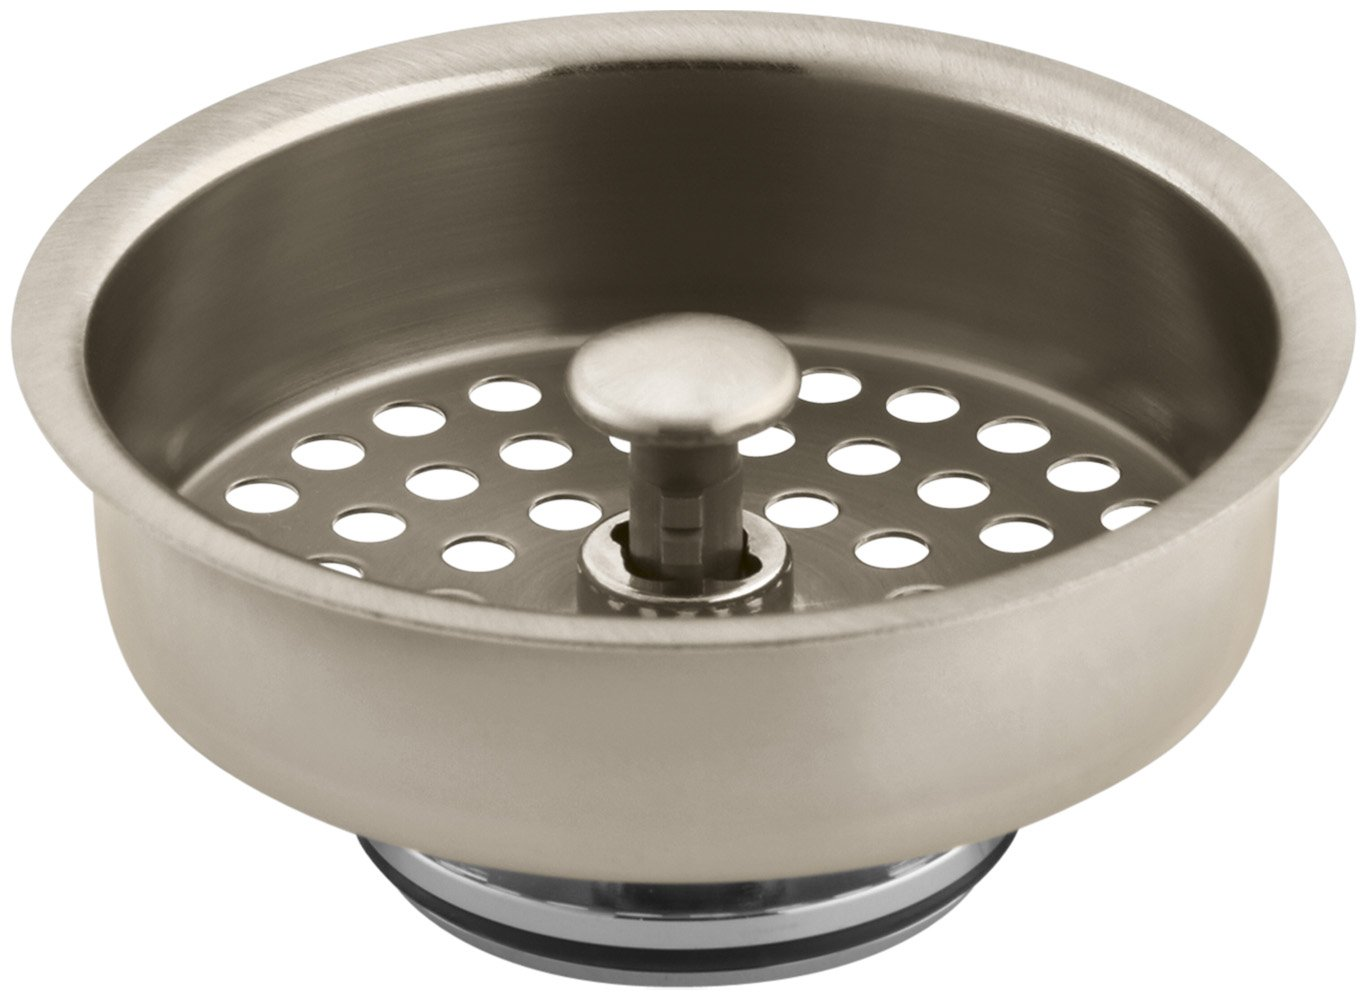 KOHLER K-8803-BV Duostrainer Basket Strainer, Vibrant Brushed Bronze by Kohler